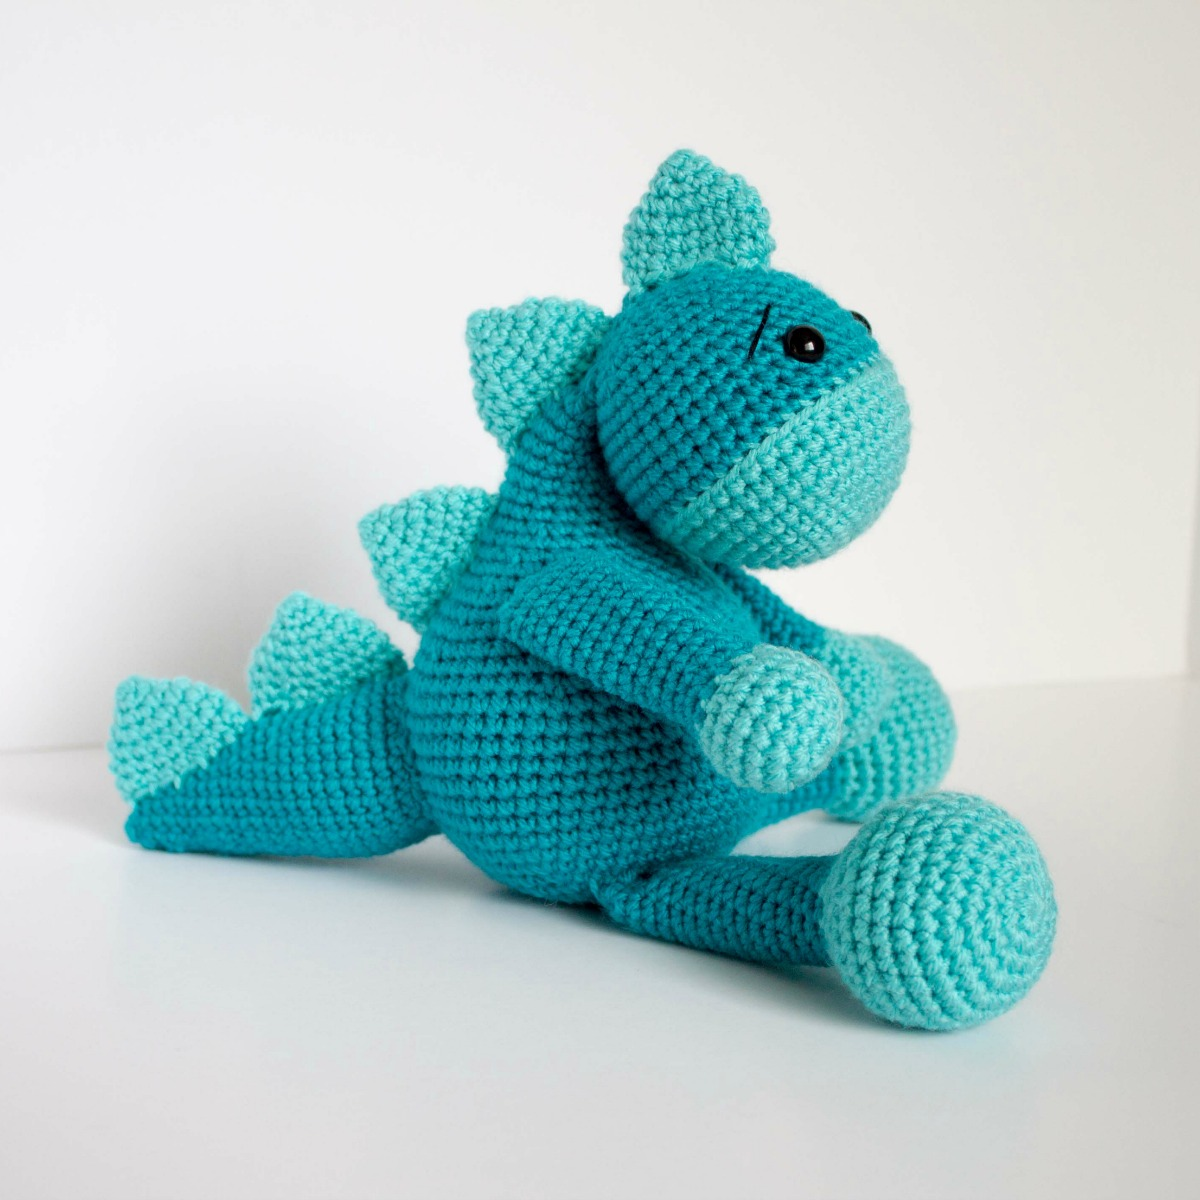 15 Free Crochet Dinosaur Patterns – A Cute Toy - A More Crafty Life | 1200x1200